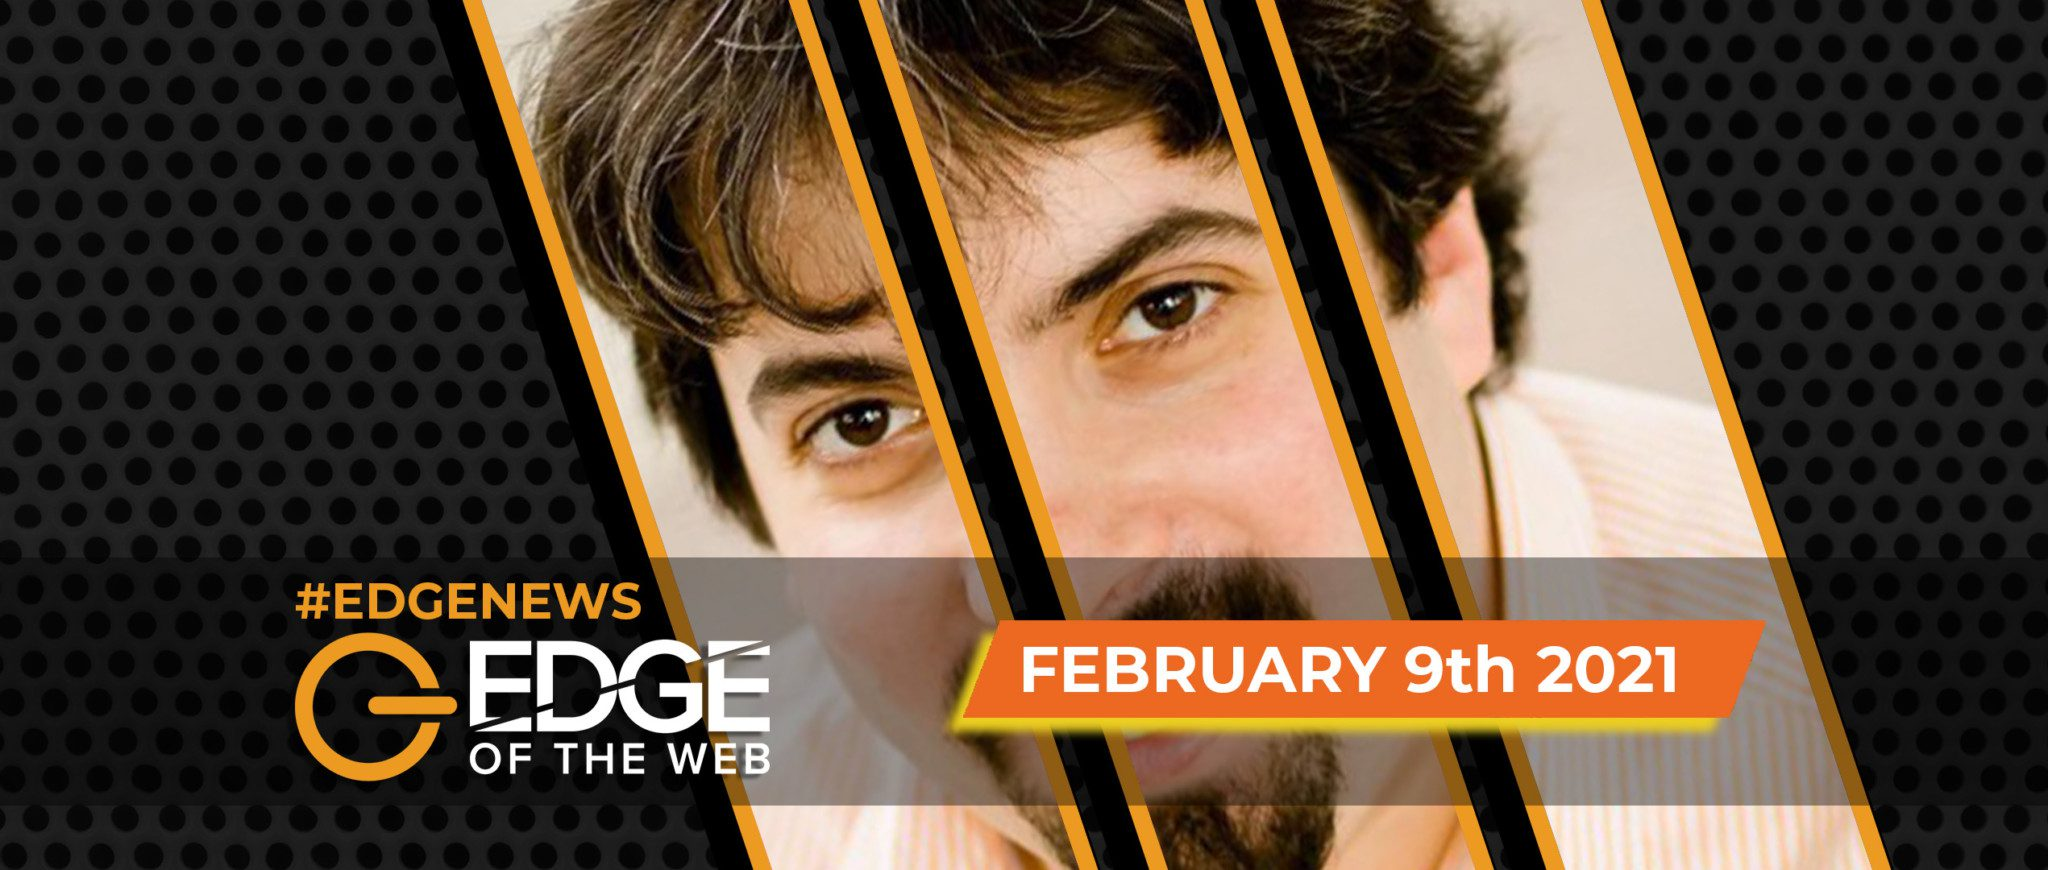 EDGE News February 8 Featured Image